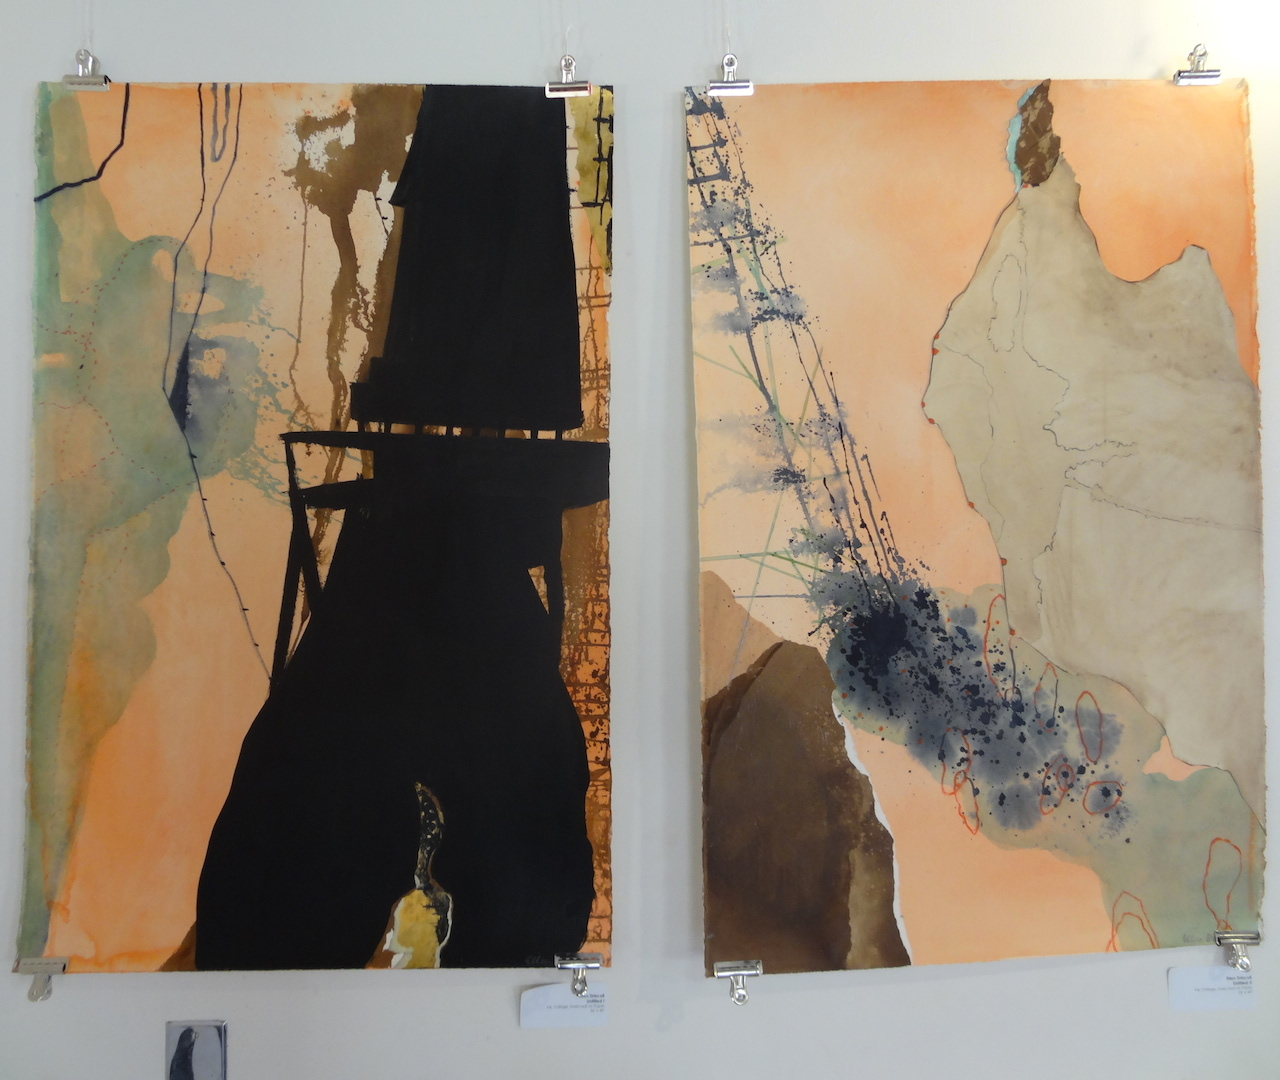 """Ellen Driscoll, """"Untitled I"""" (left) and """"Untitled II"""" (right)"""